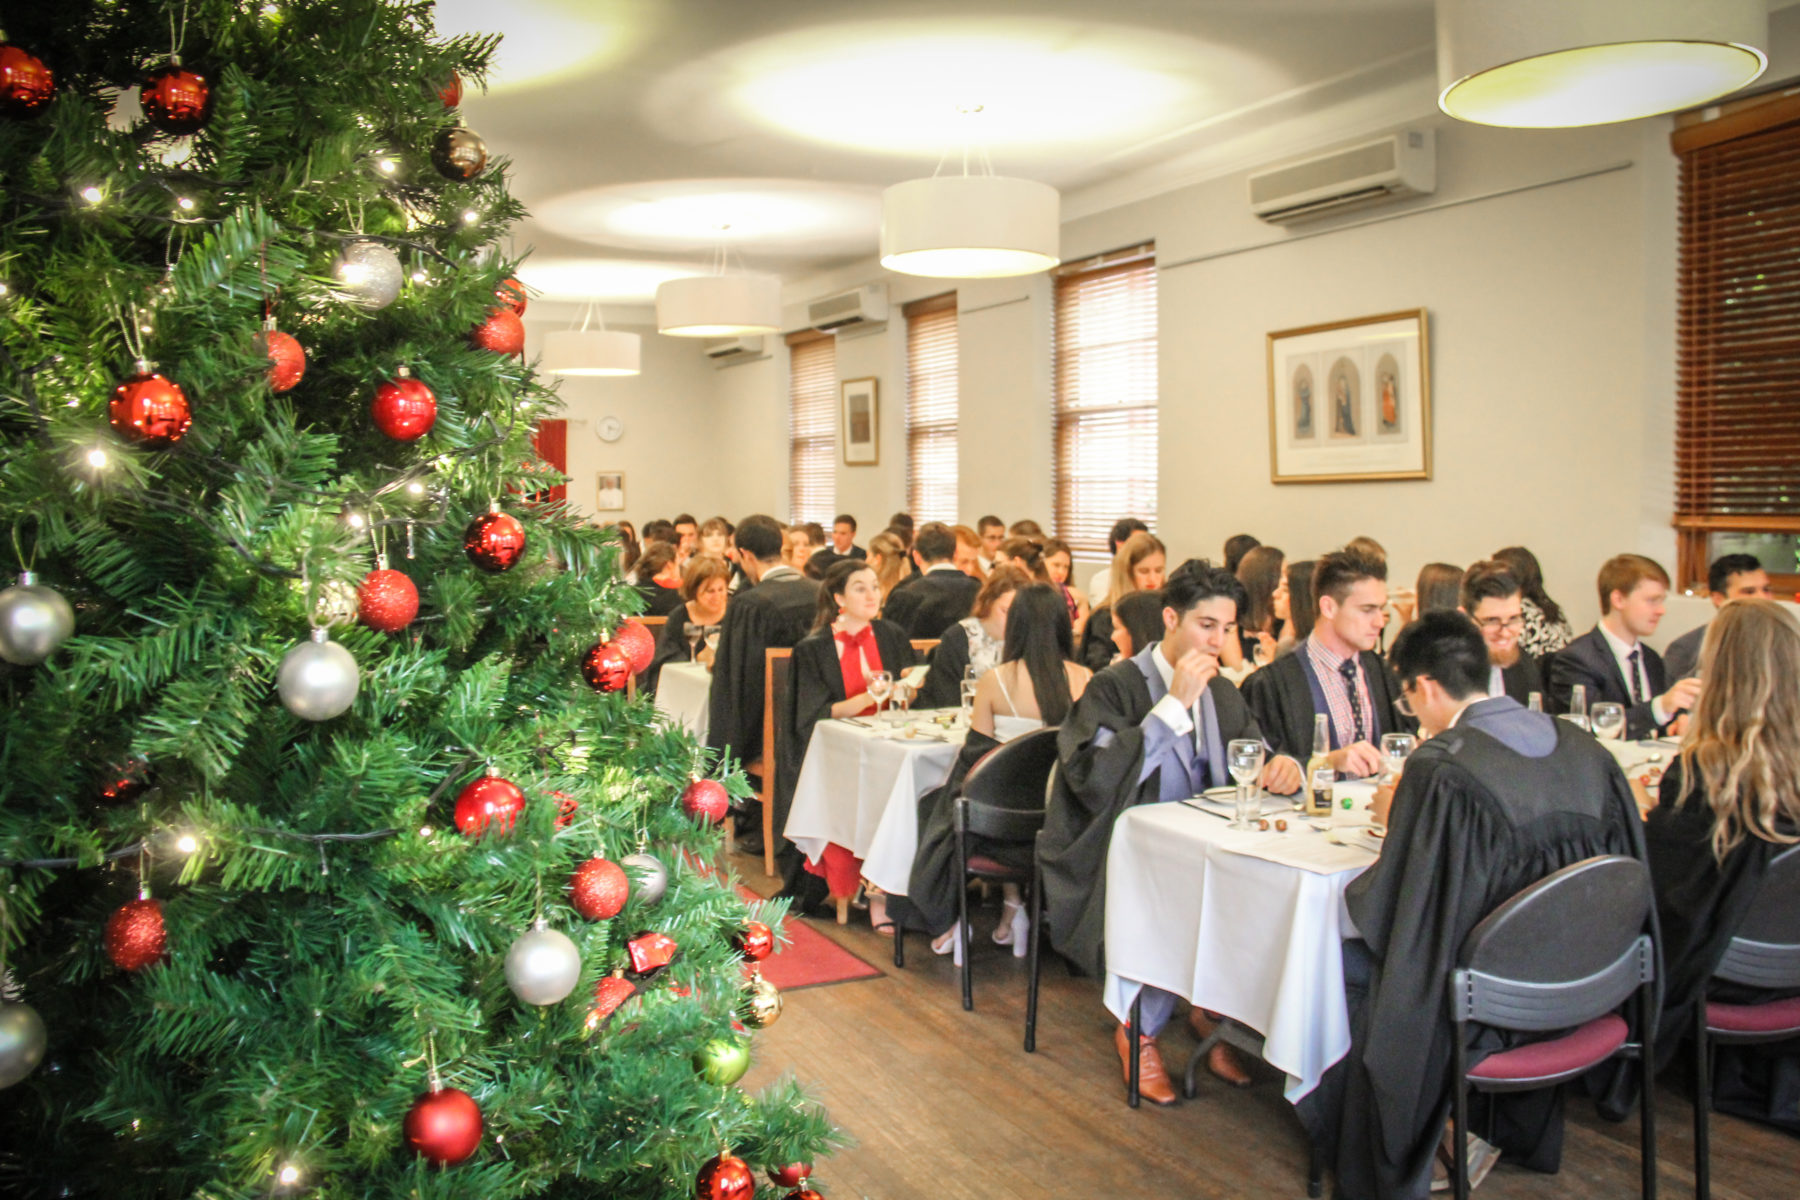 Academic year wraps up at Campion